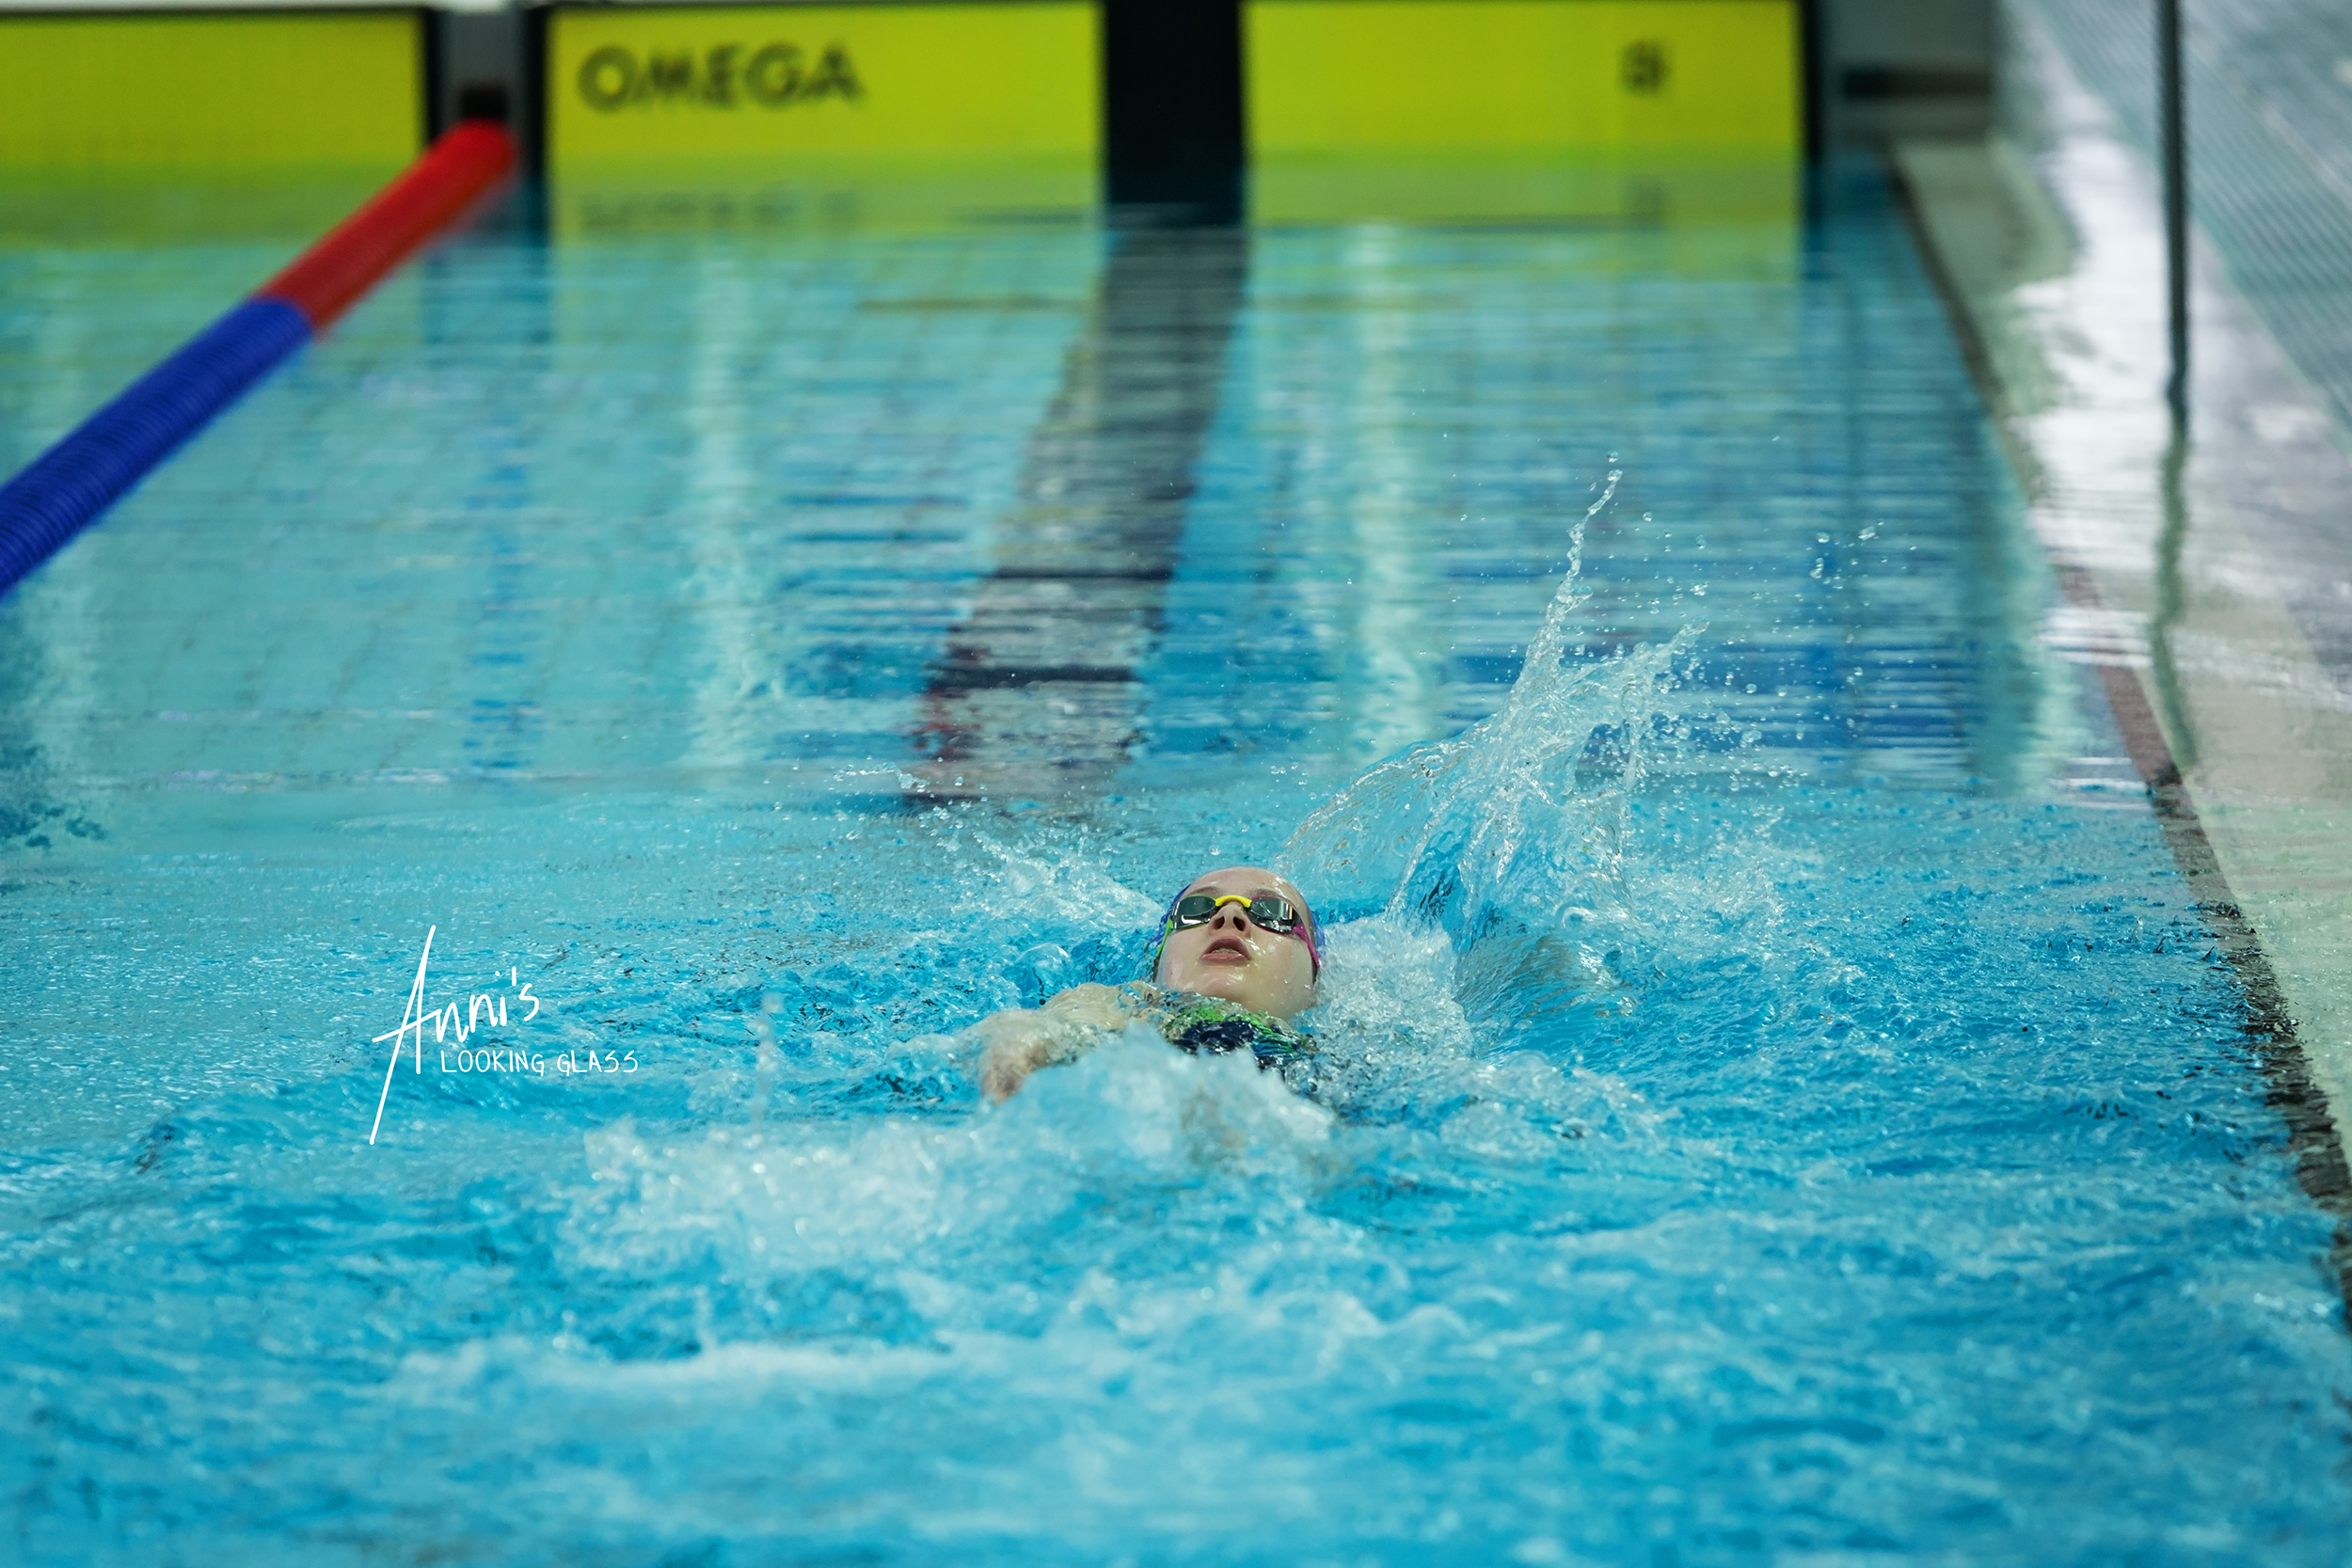 Loughborough Photographer: A girl competing in a swimming race at Loughborough University's pool. 24th March 2018